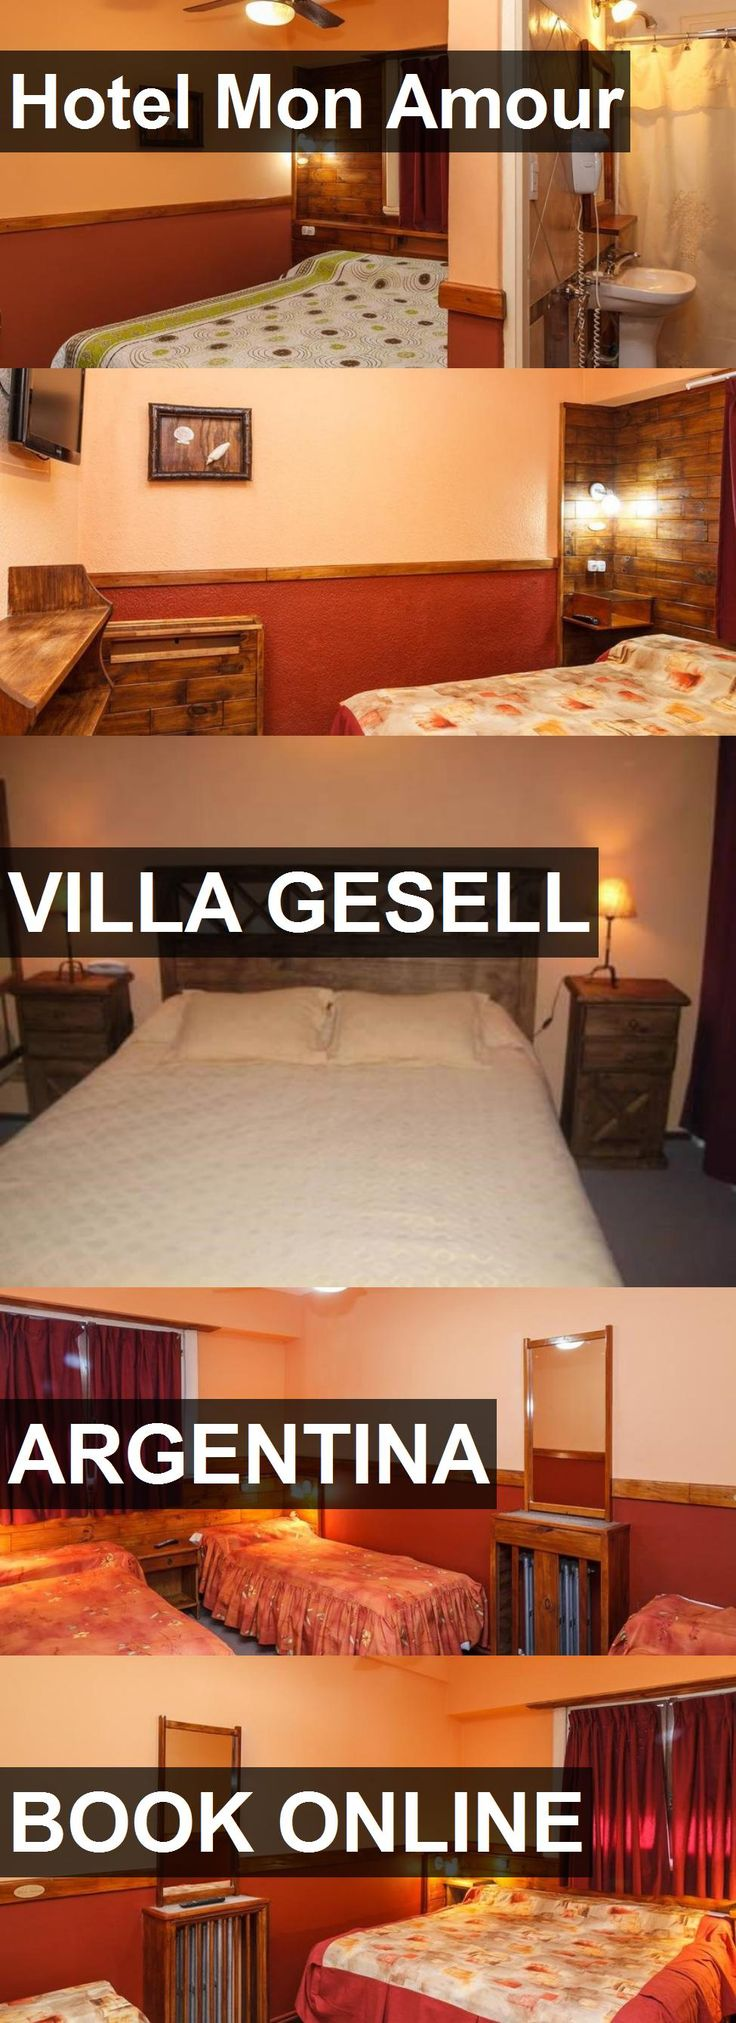 Hotel Mon Amour in Villa Gesell, Argentina. For more information, photos, reviews and best prices please follow the link. #Argentina #VillaGesell #travel #vacation #hotel